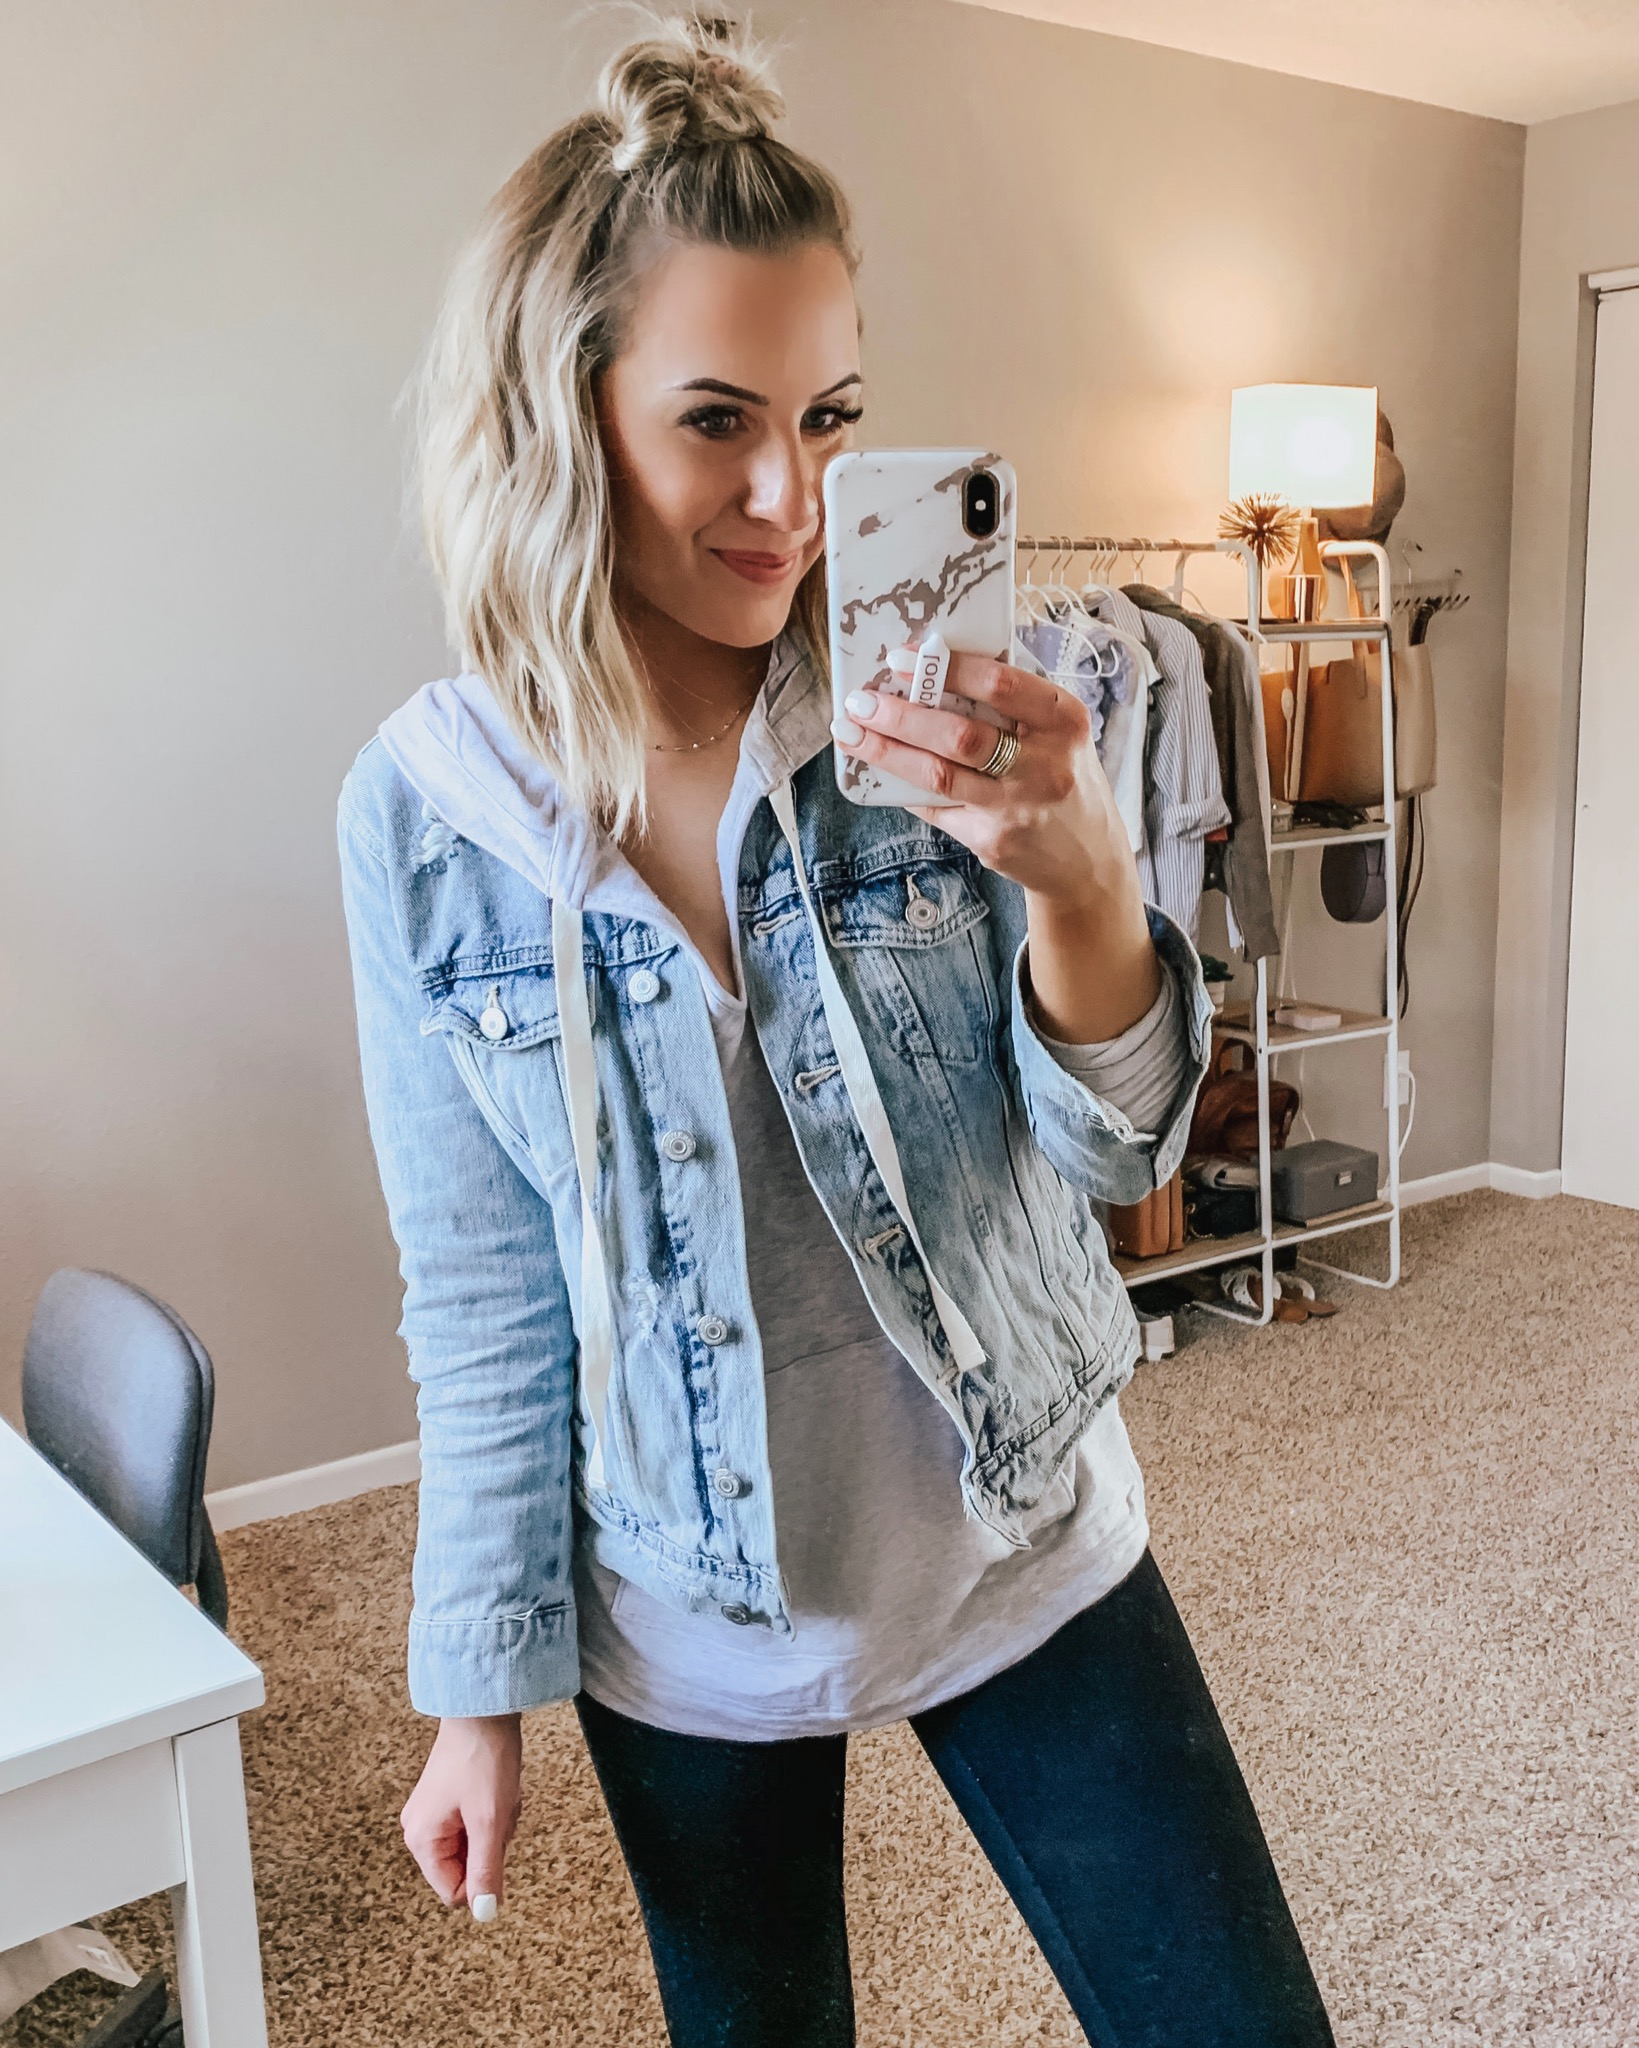 Cute & Affordable Spring Outfits! May Instagram Round Up Week 2 & 3 + Weekend Sales! Style Blogger Lauren Meyer shares an Instagram Round Up + Weekend Sales!